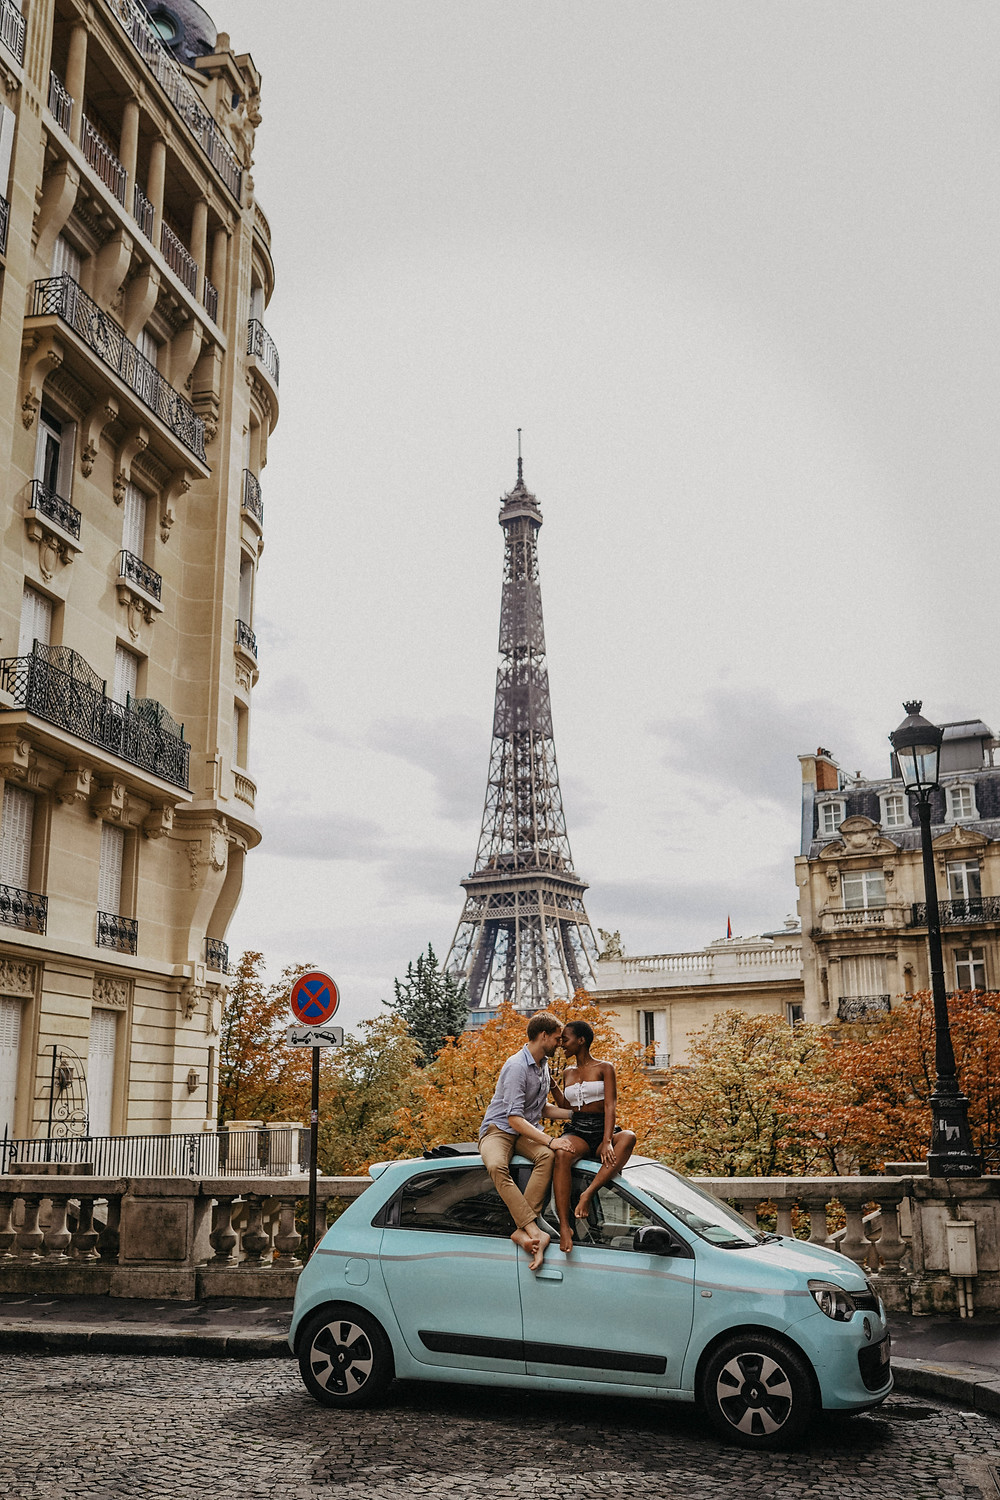 Interracial Couple Photos at eiffel tower sit on a car